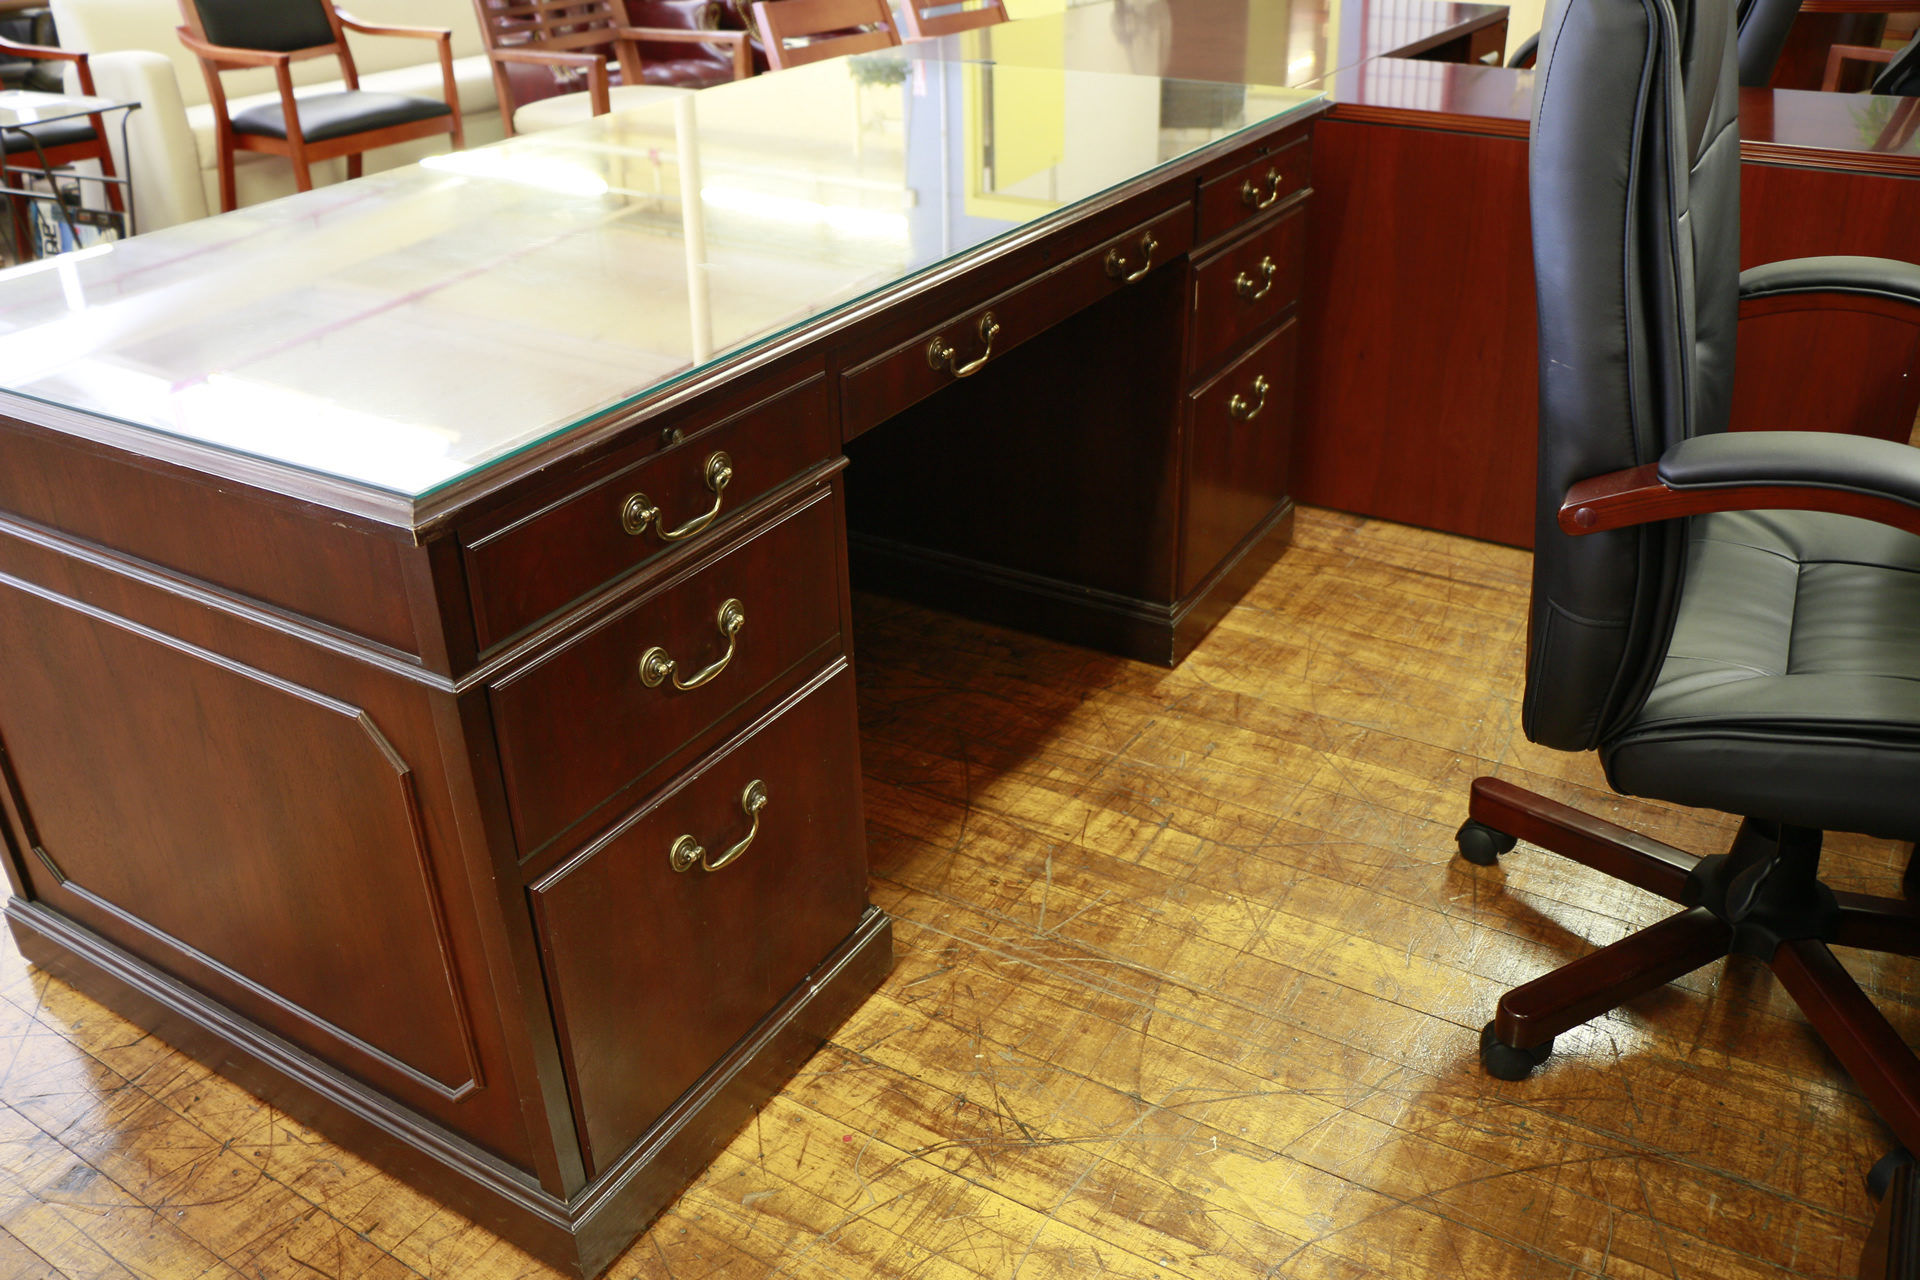 peartreeofficefurniture_peartreeofficefurniture_mg_3687.jpg